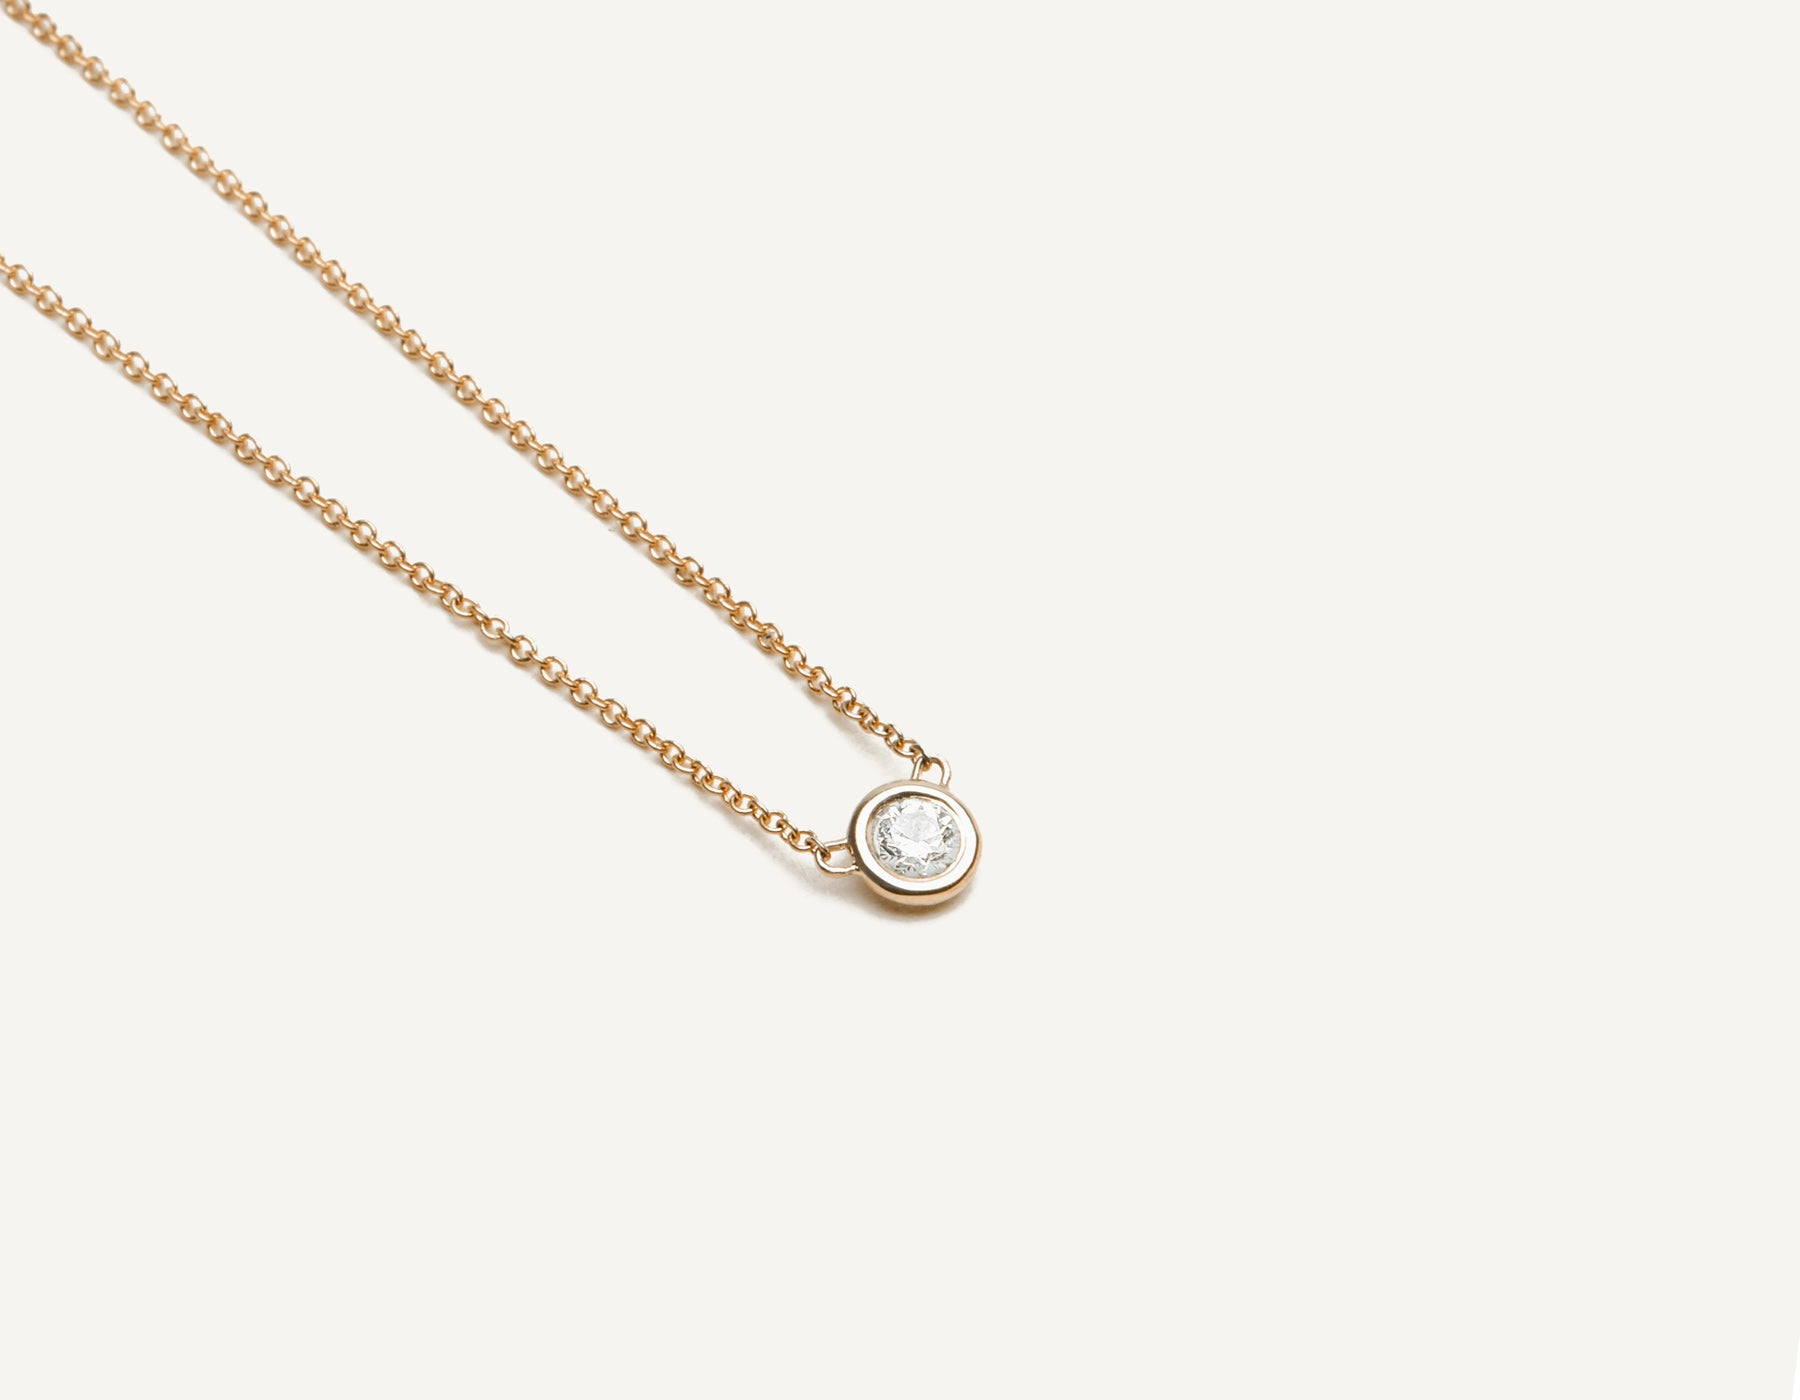 Classic minimalist 14k solid gold .1 carat round brilliant cut Solitaire Diamond Necklace on delicate chain Vrai & Oro, 14K Rose Gold